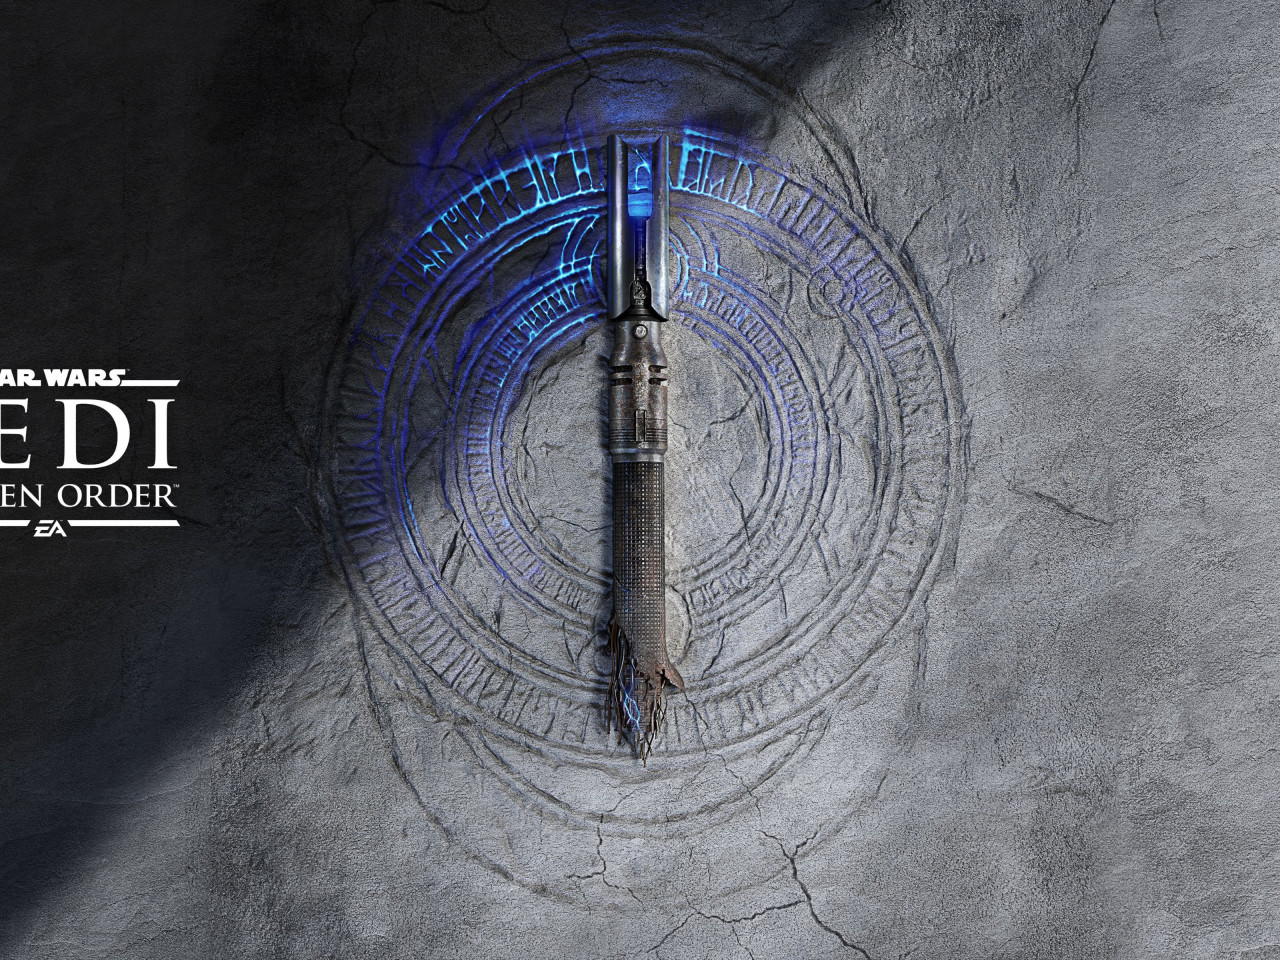 Star Wars Jedi Fallen Order wallpaper 1280x960